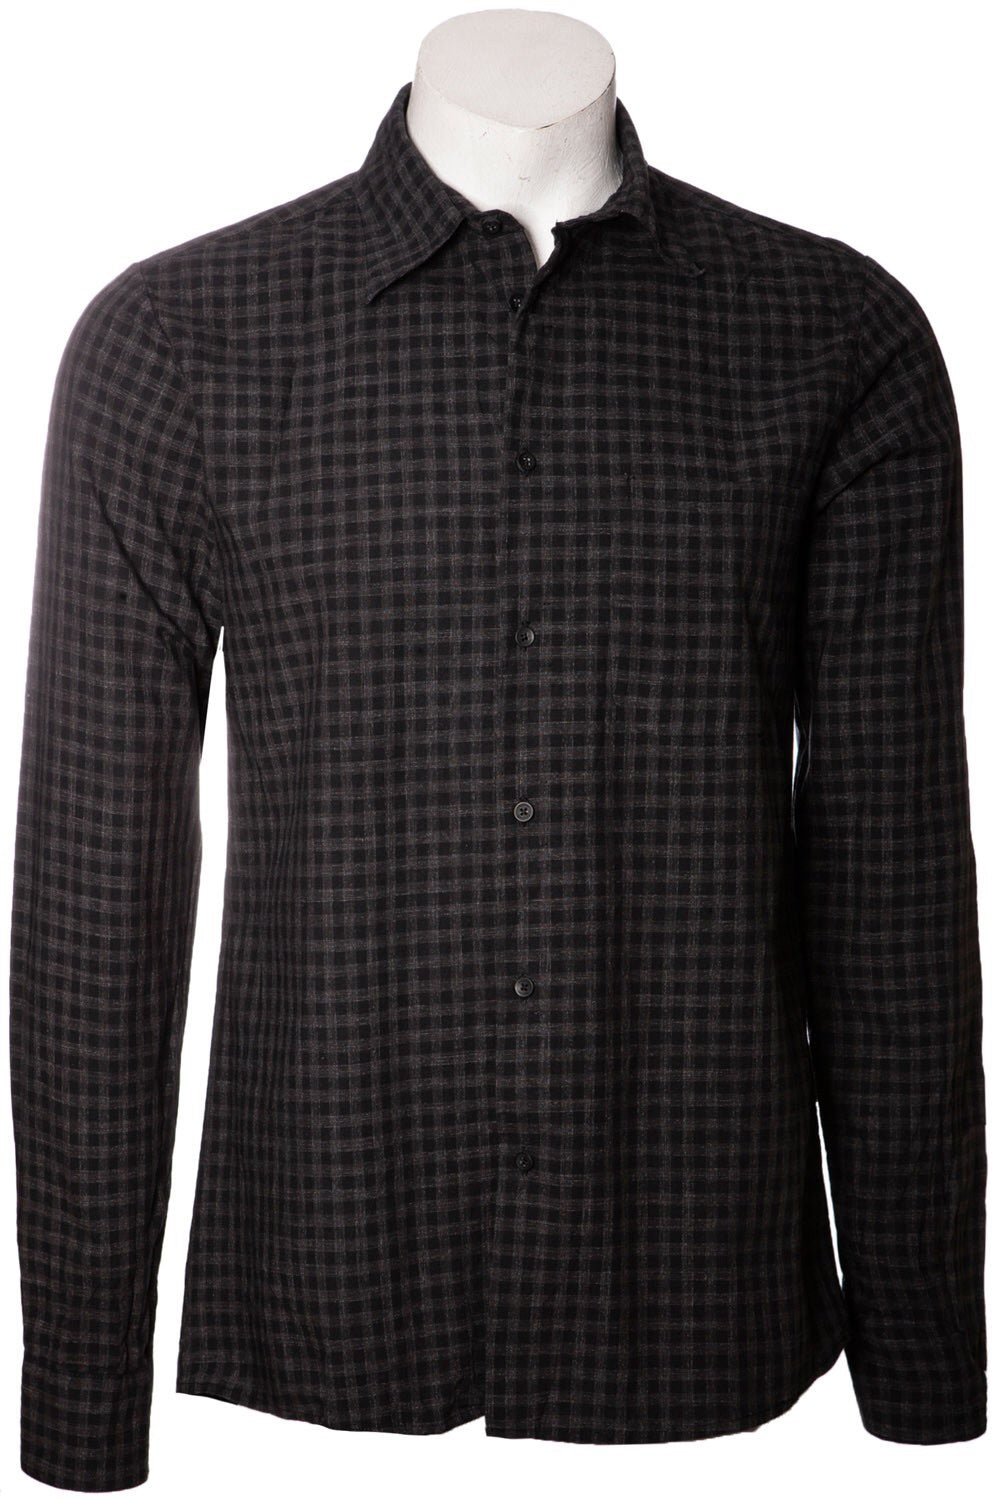 Hannes Roether Check Shirt - LAST SIZES!